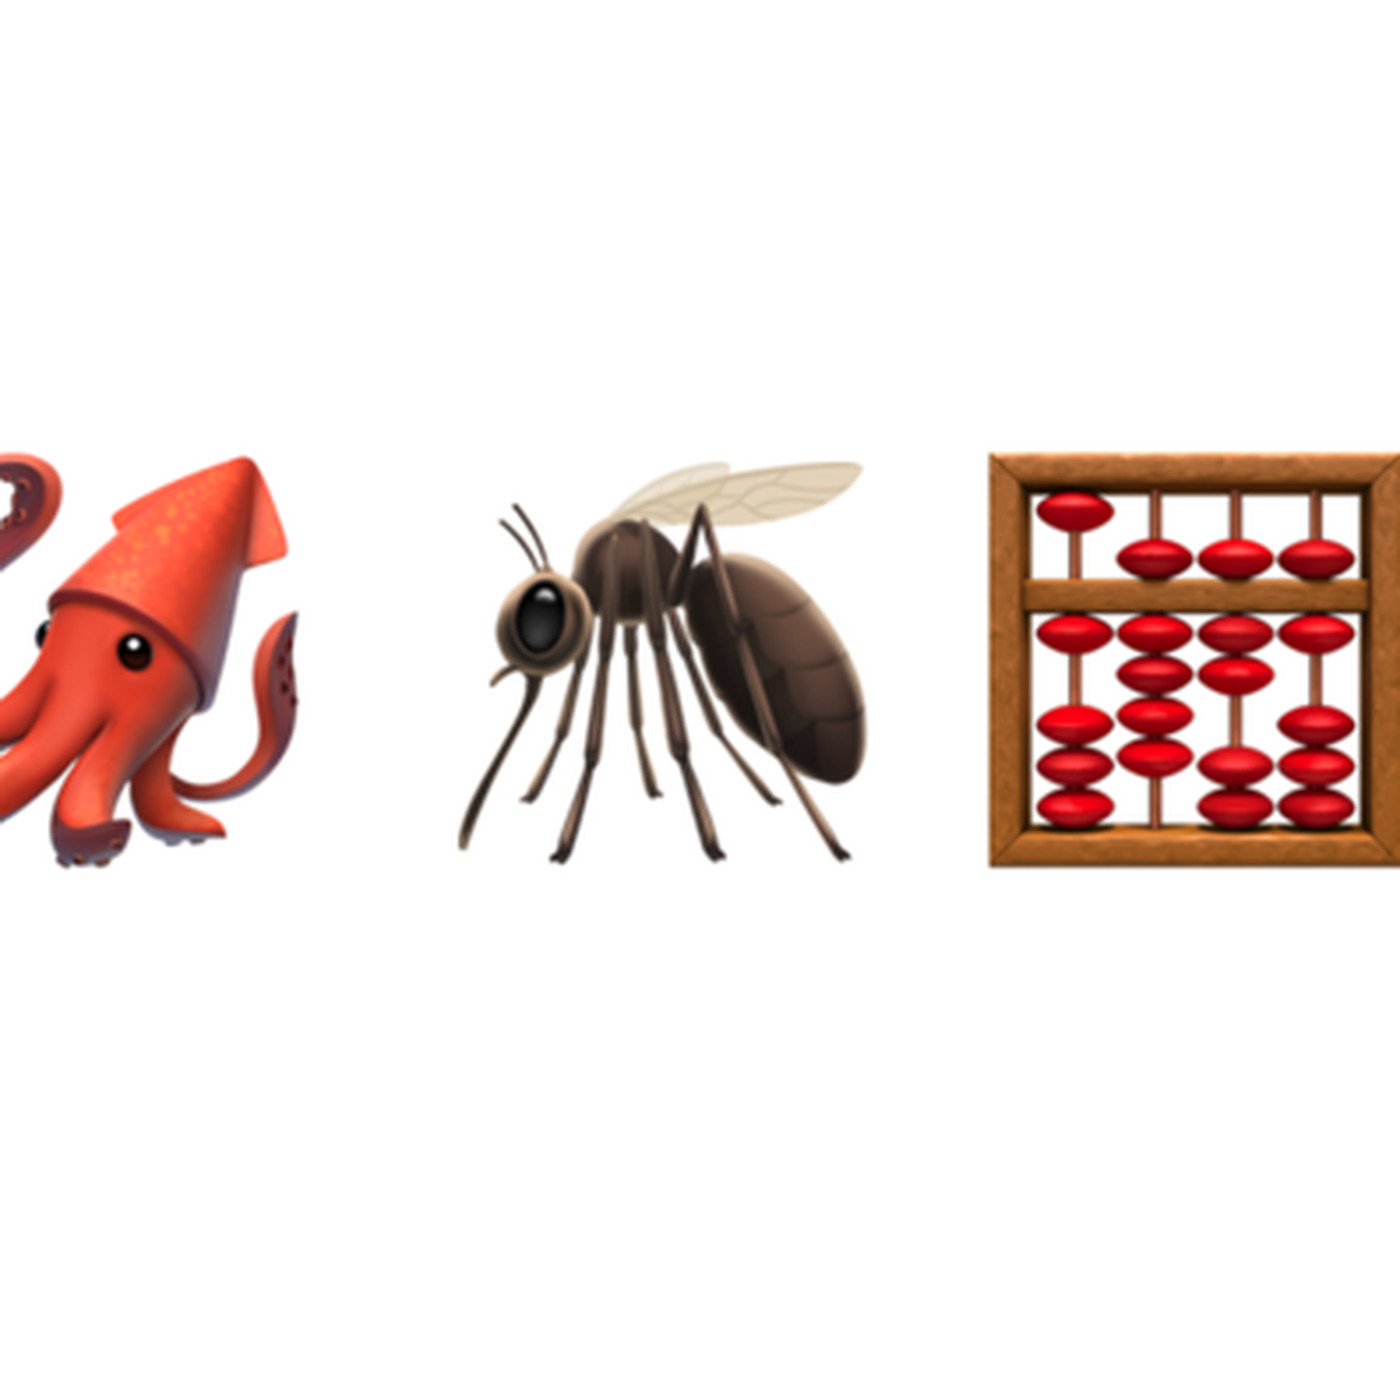 iOS 13.1 finally fixes the squid, mosquito, and abacus emoji.